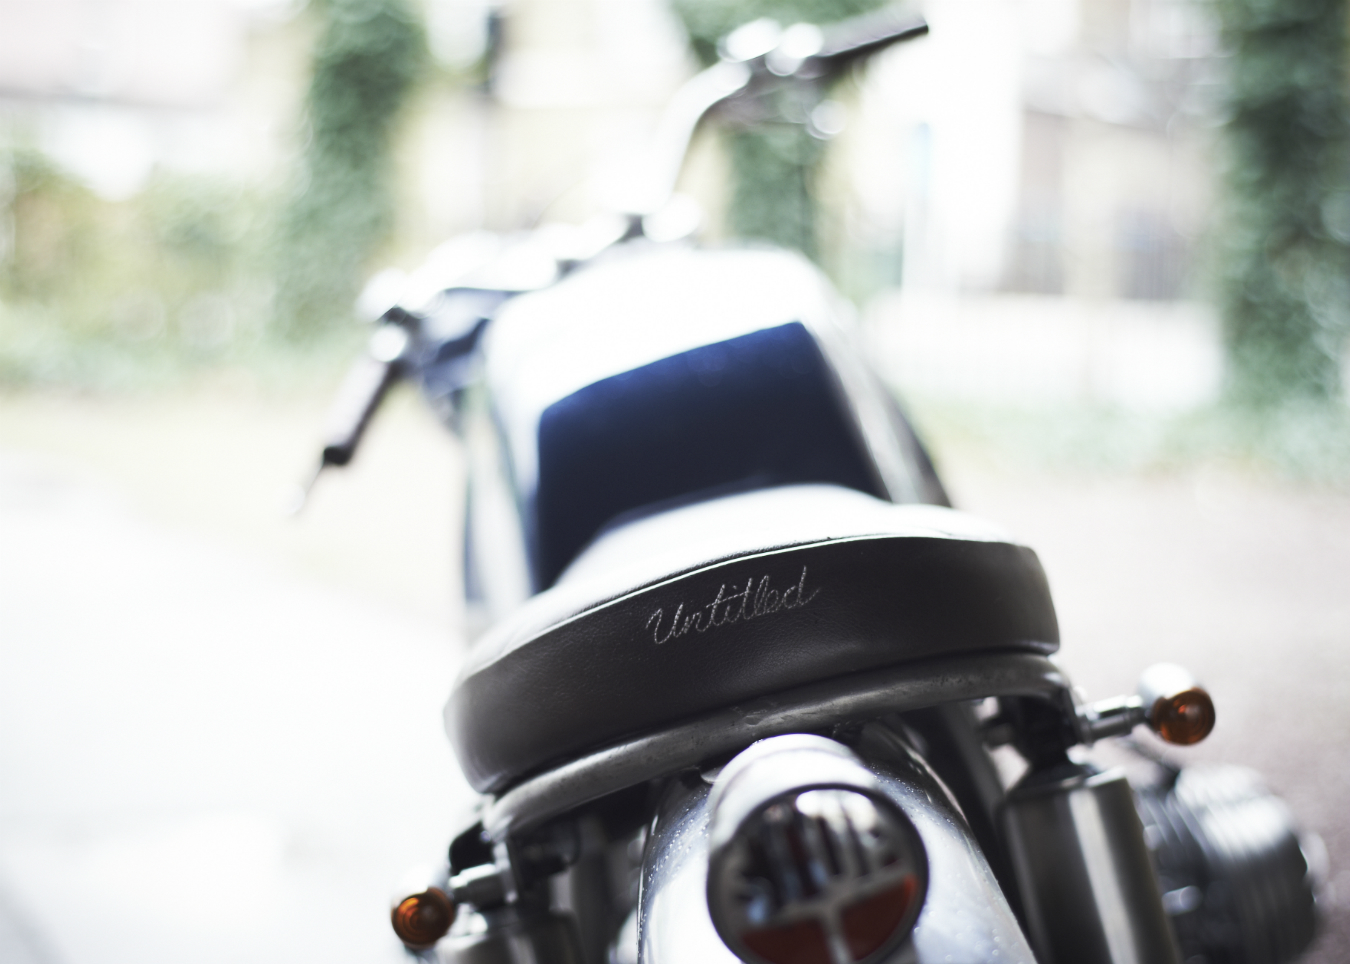 Daily Edit: Untitled Motorcycles